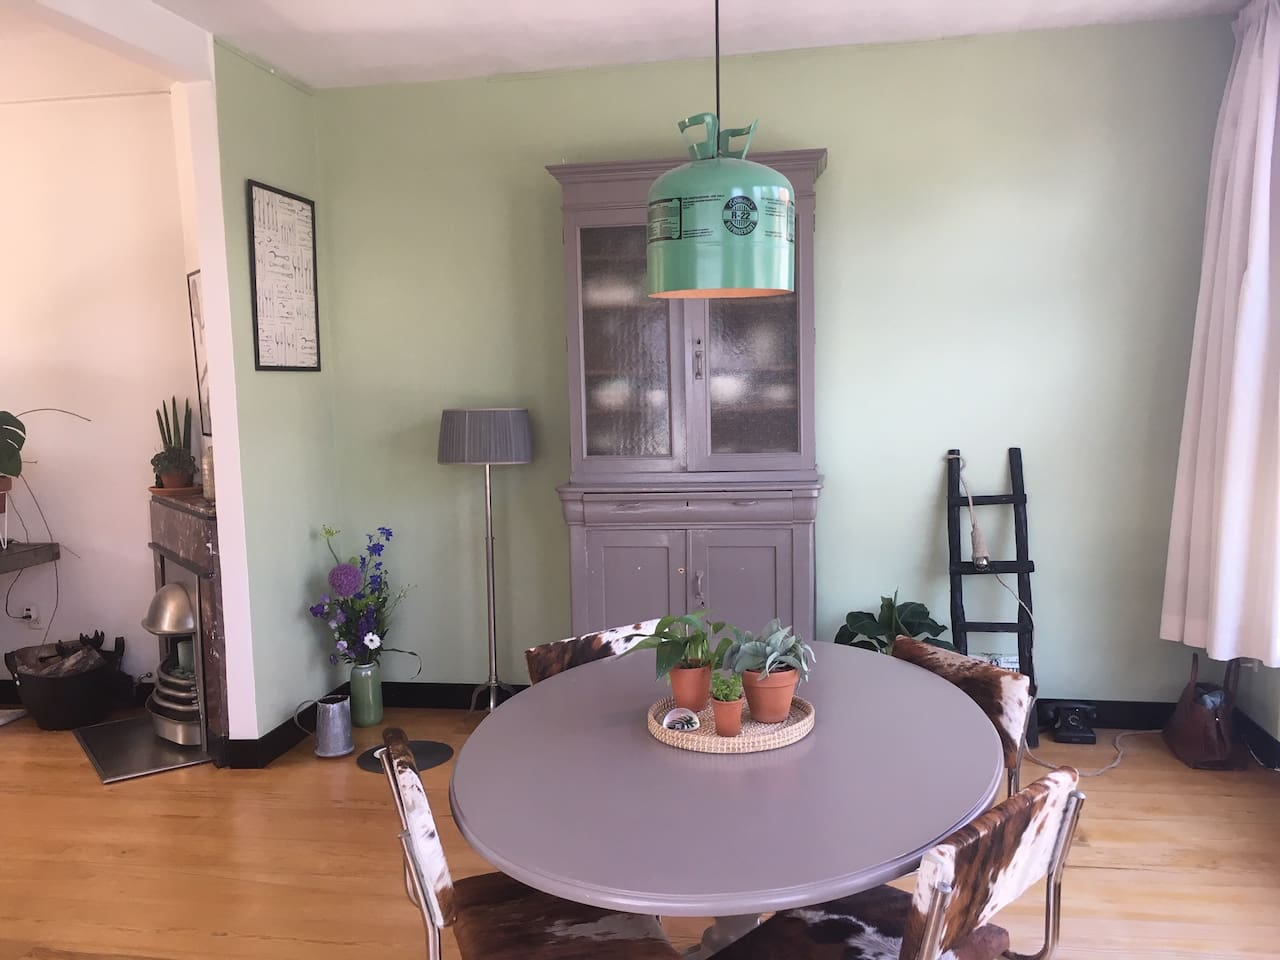 Sitting room to the left, dining area to the right